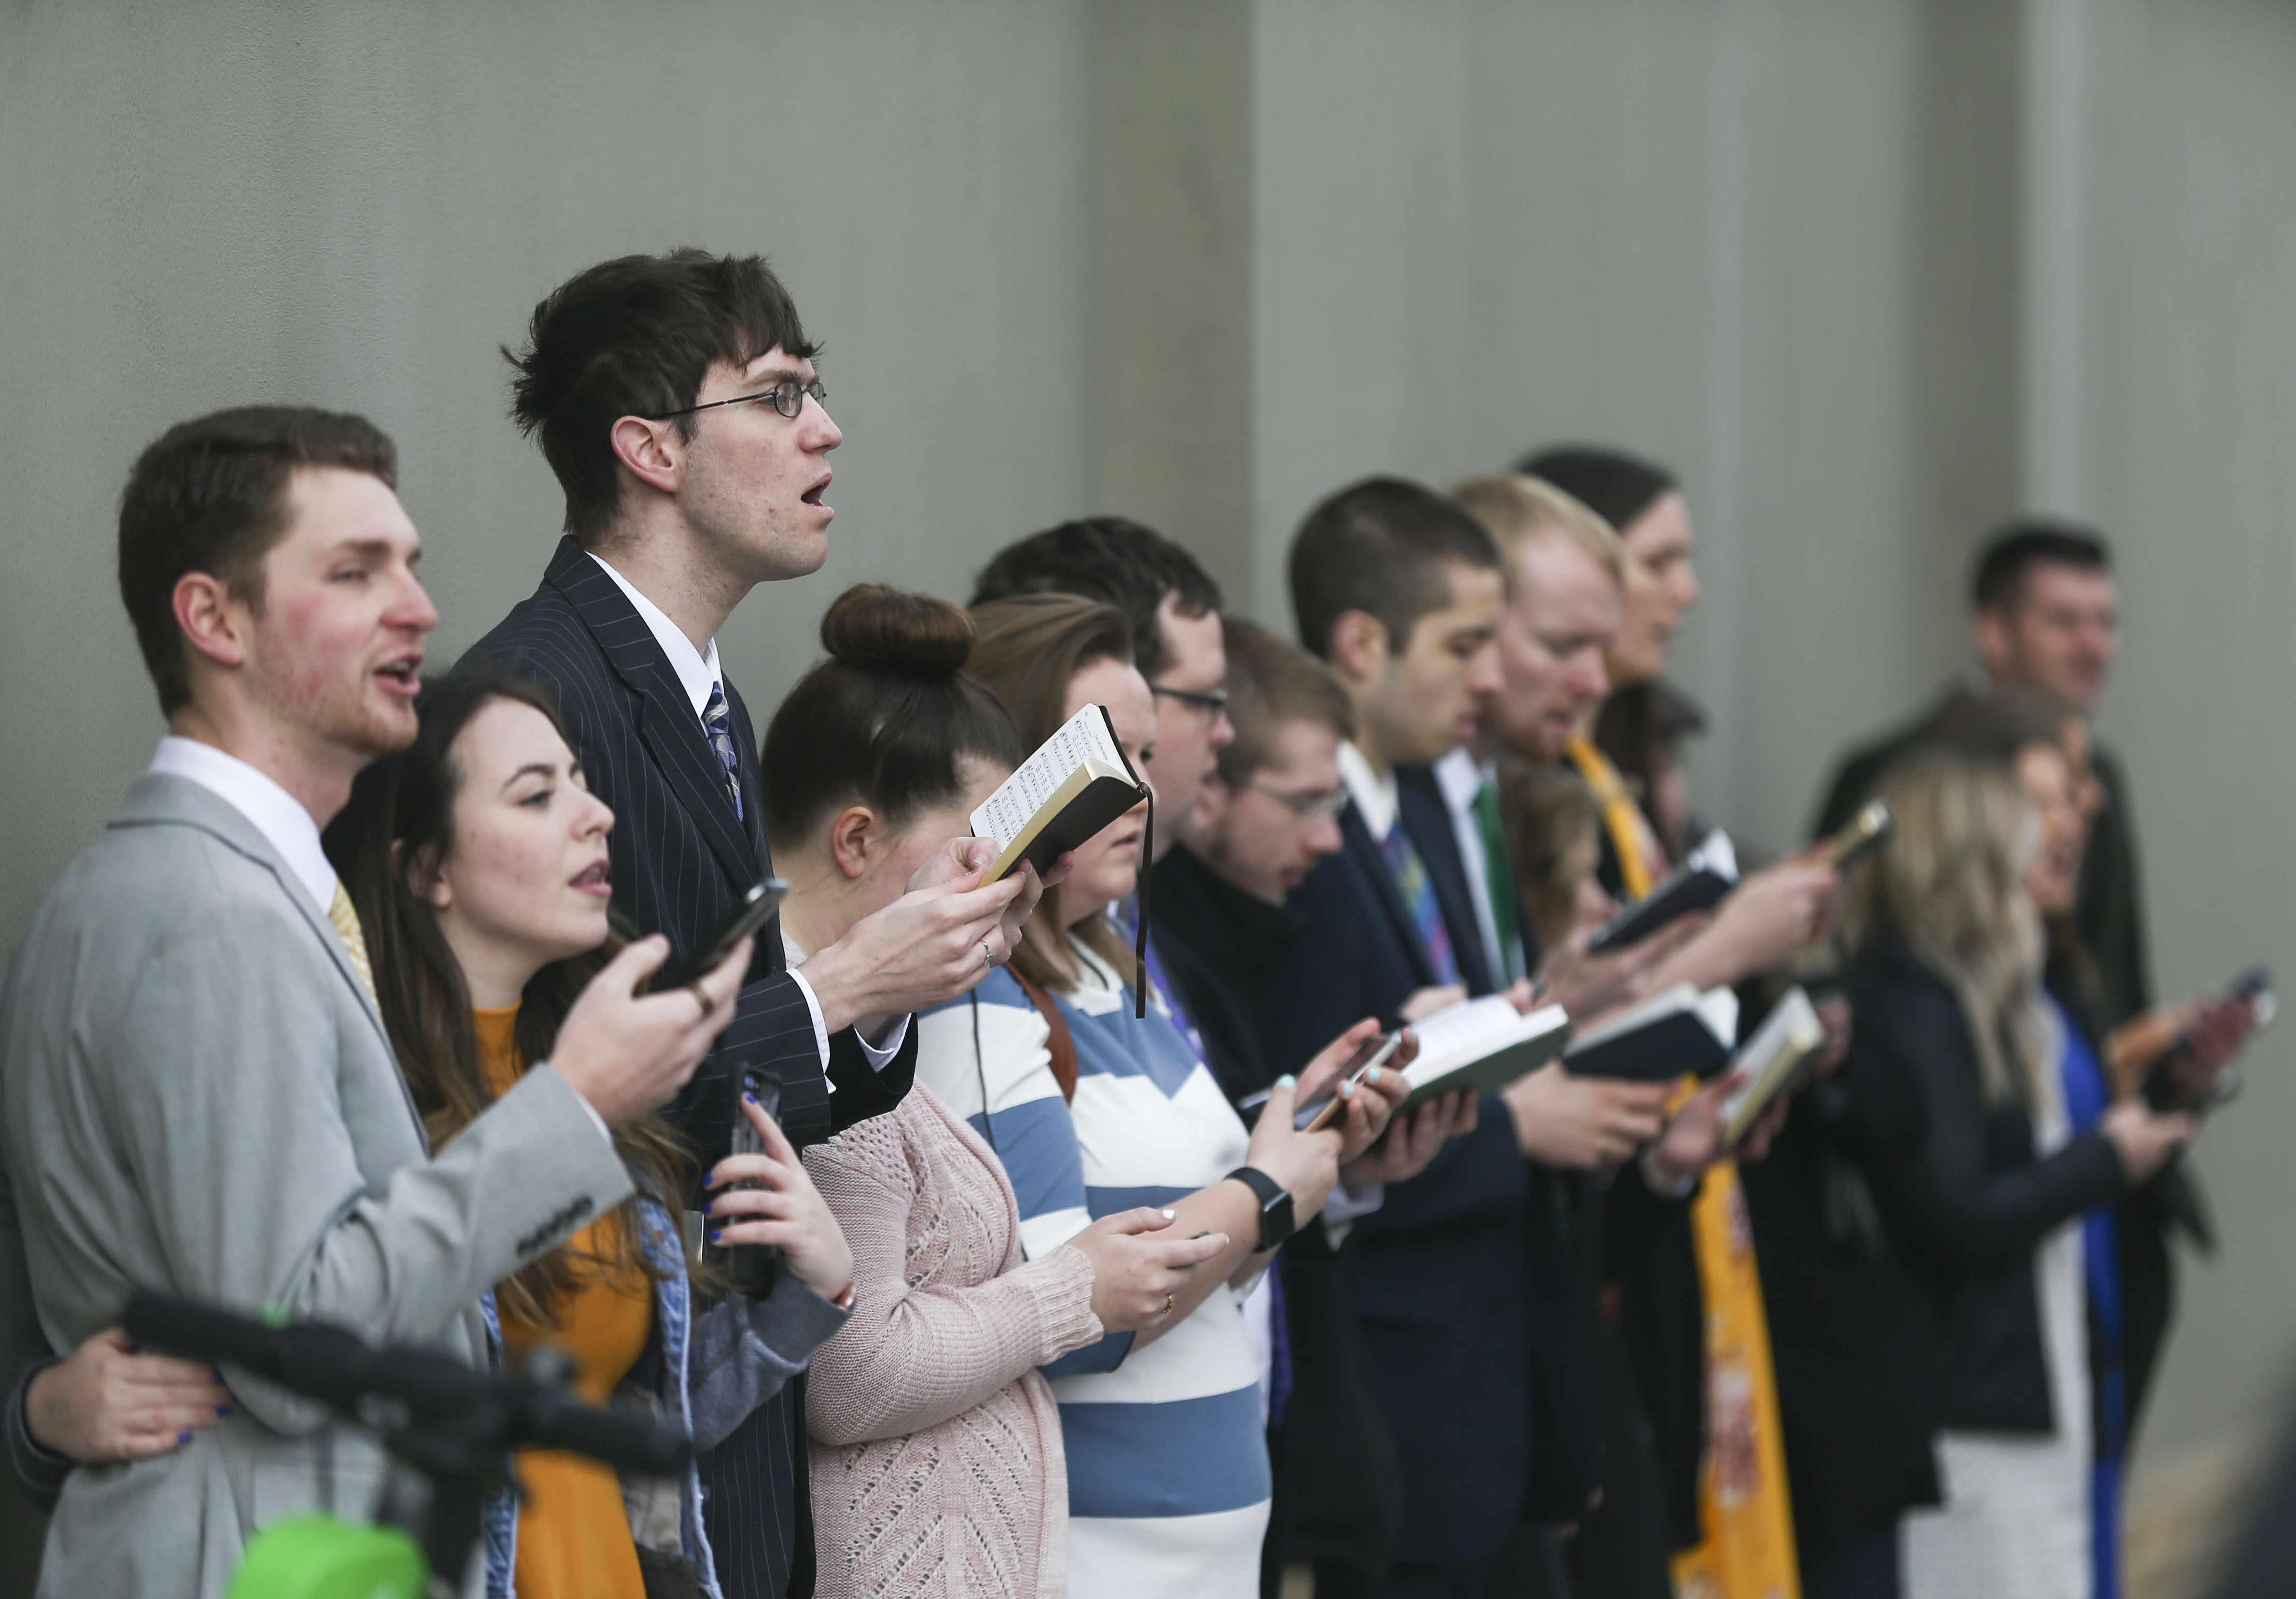 Conferencegoers sing outside the Conference Center before the Sunday morning session of the 189th Annual General Conference of The Church of Jesus Christ of Latter-day Saints in Salt Lake City on Sunday, April 7, 2019.